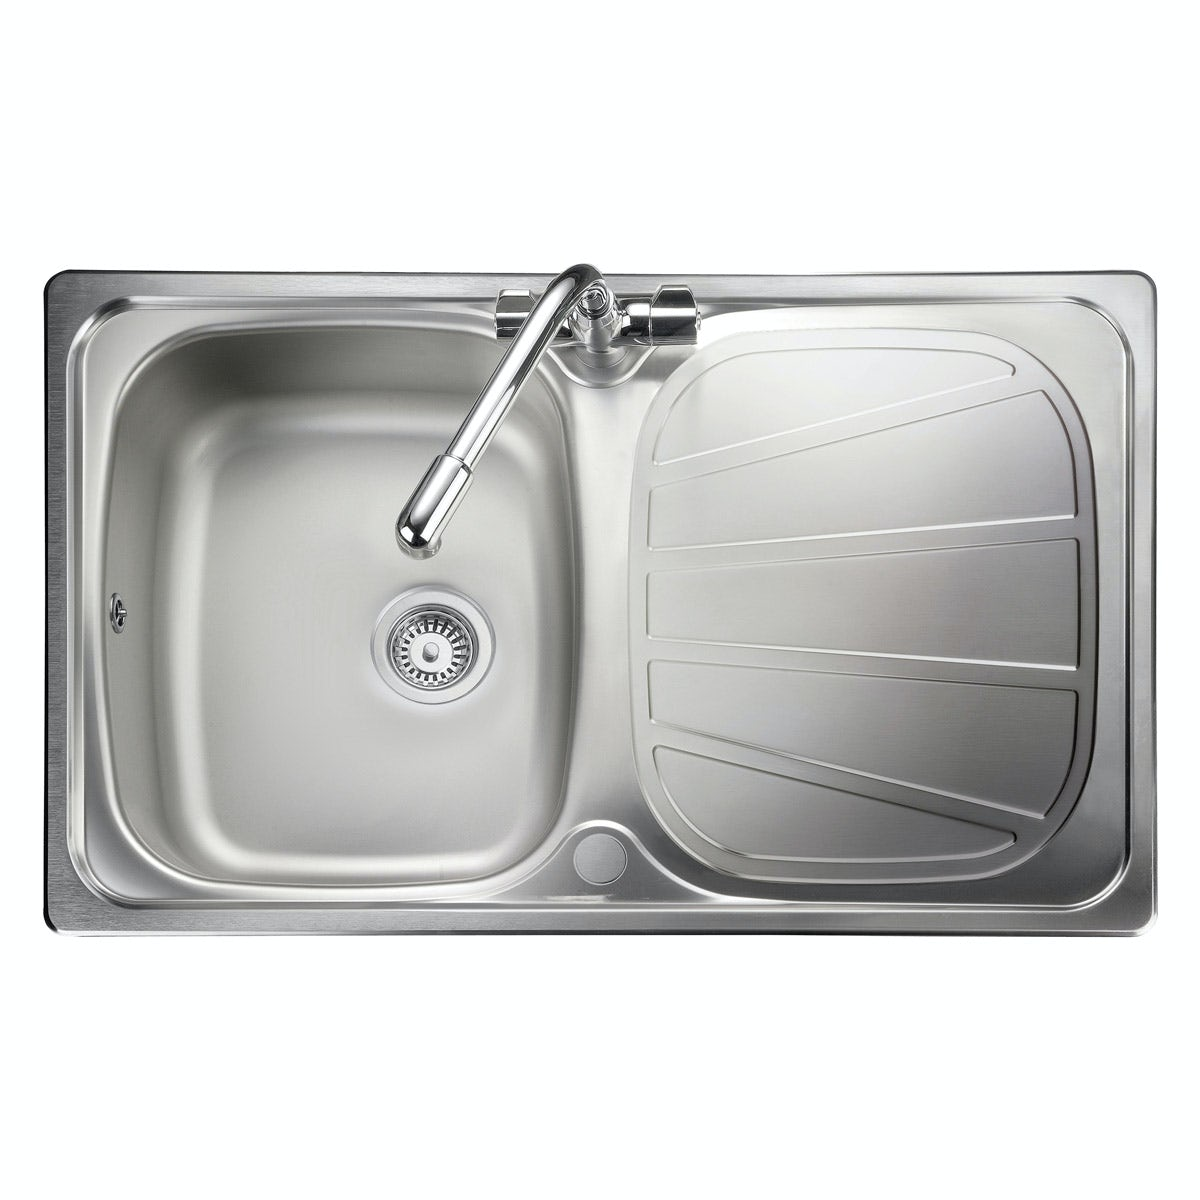 Rangemaster Baltimore 1.0 bowl compact reversible kitchen sink with waste